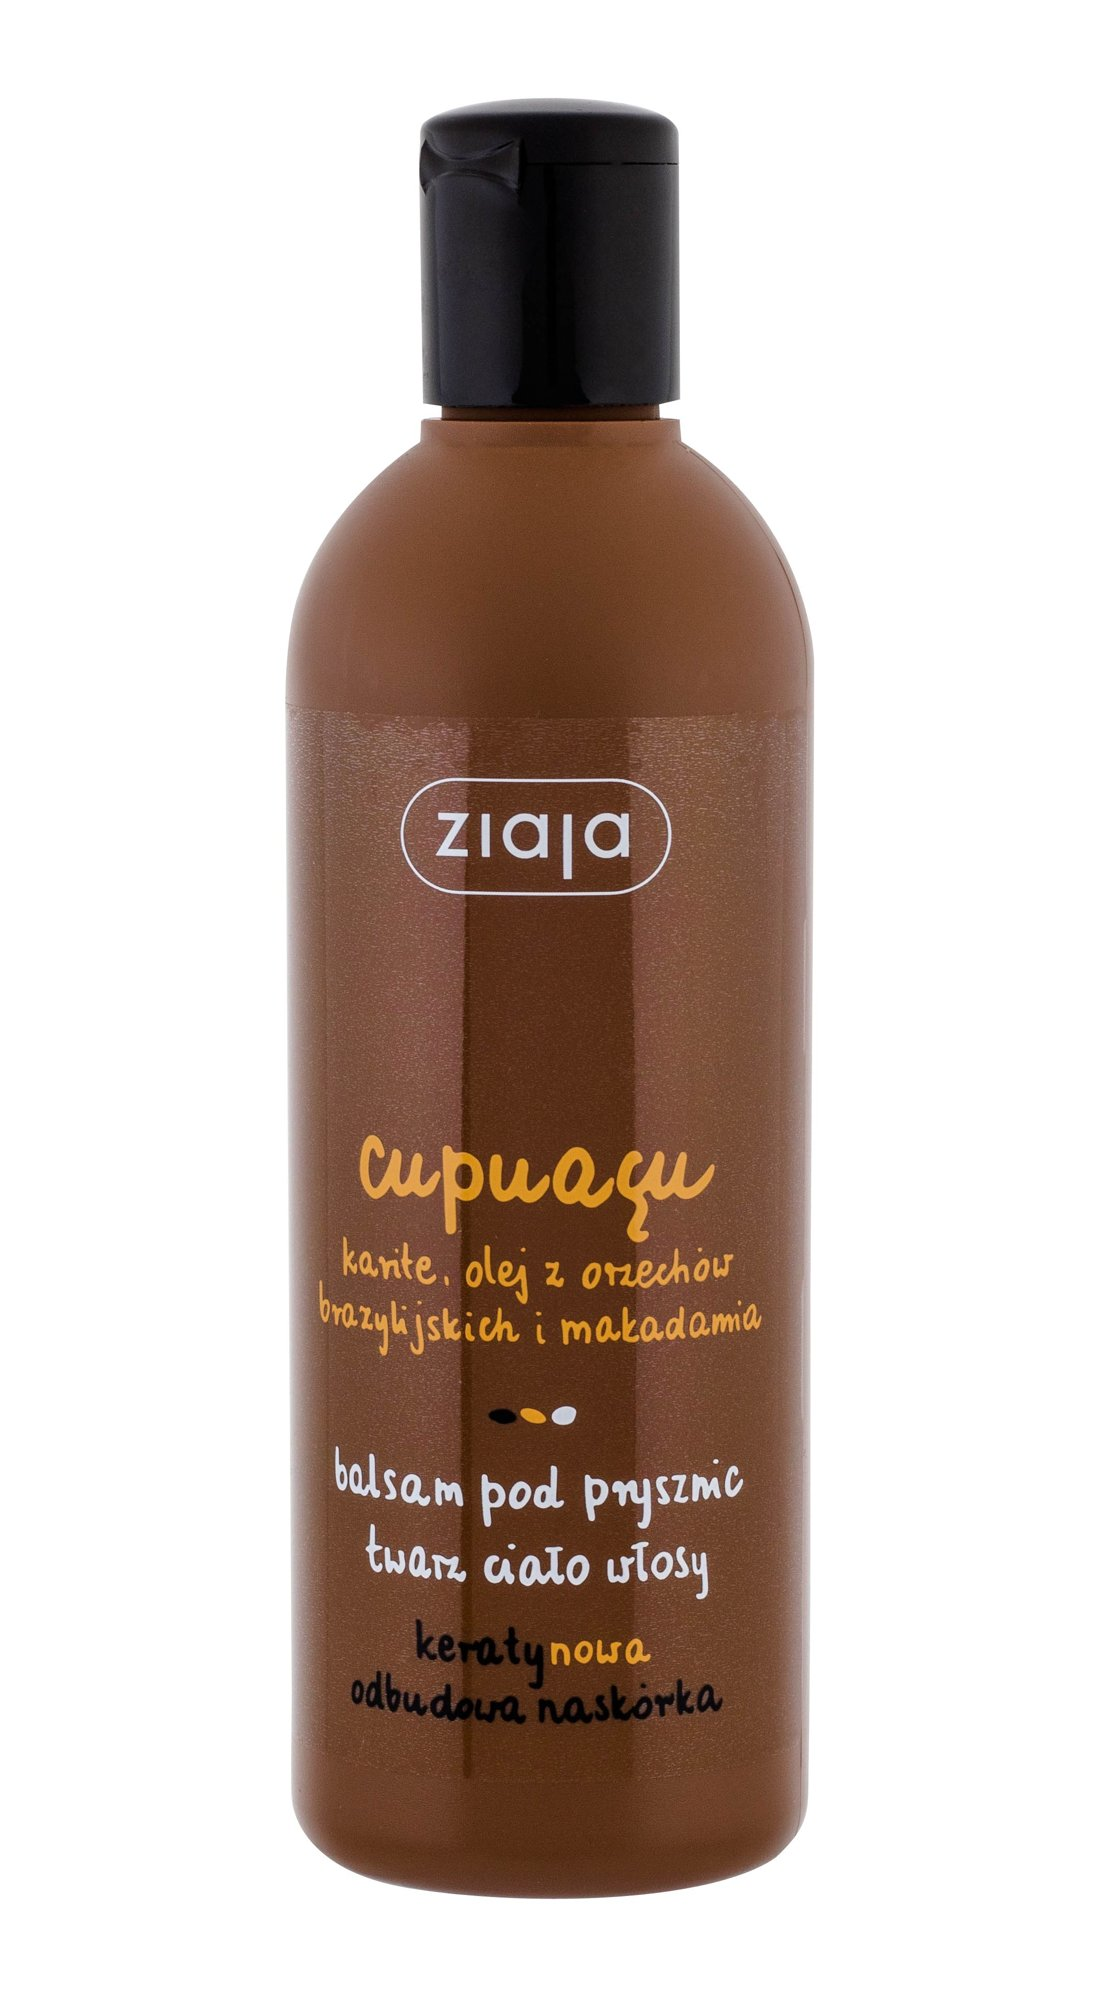 Ziaja Cupuacu Shower Cream 300ml